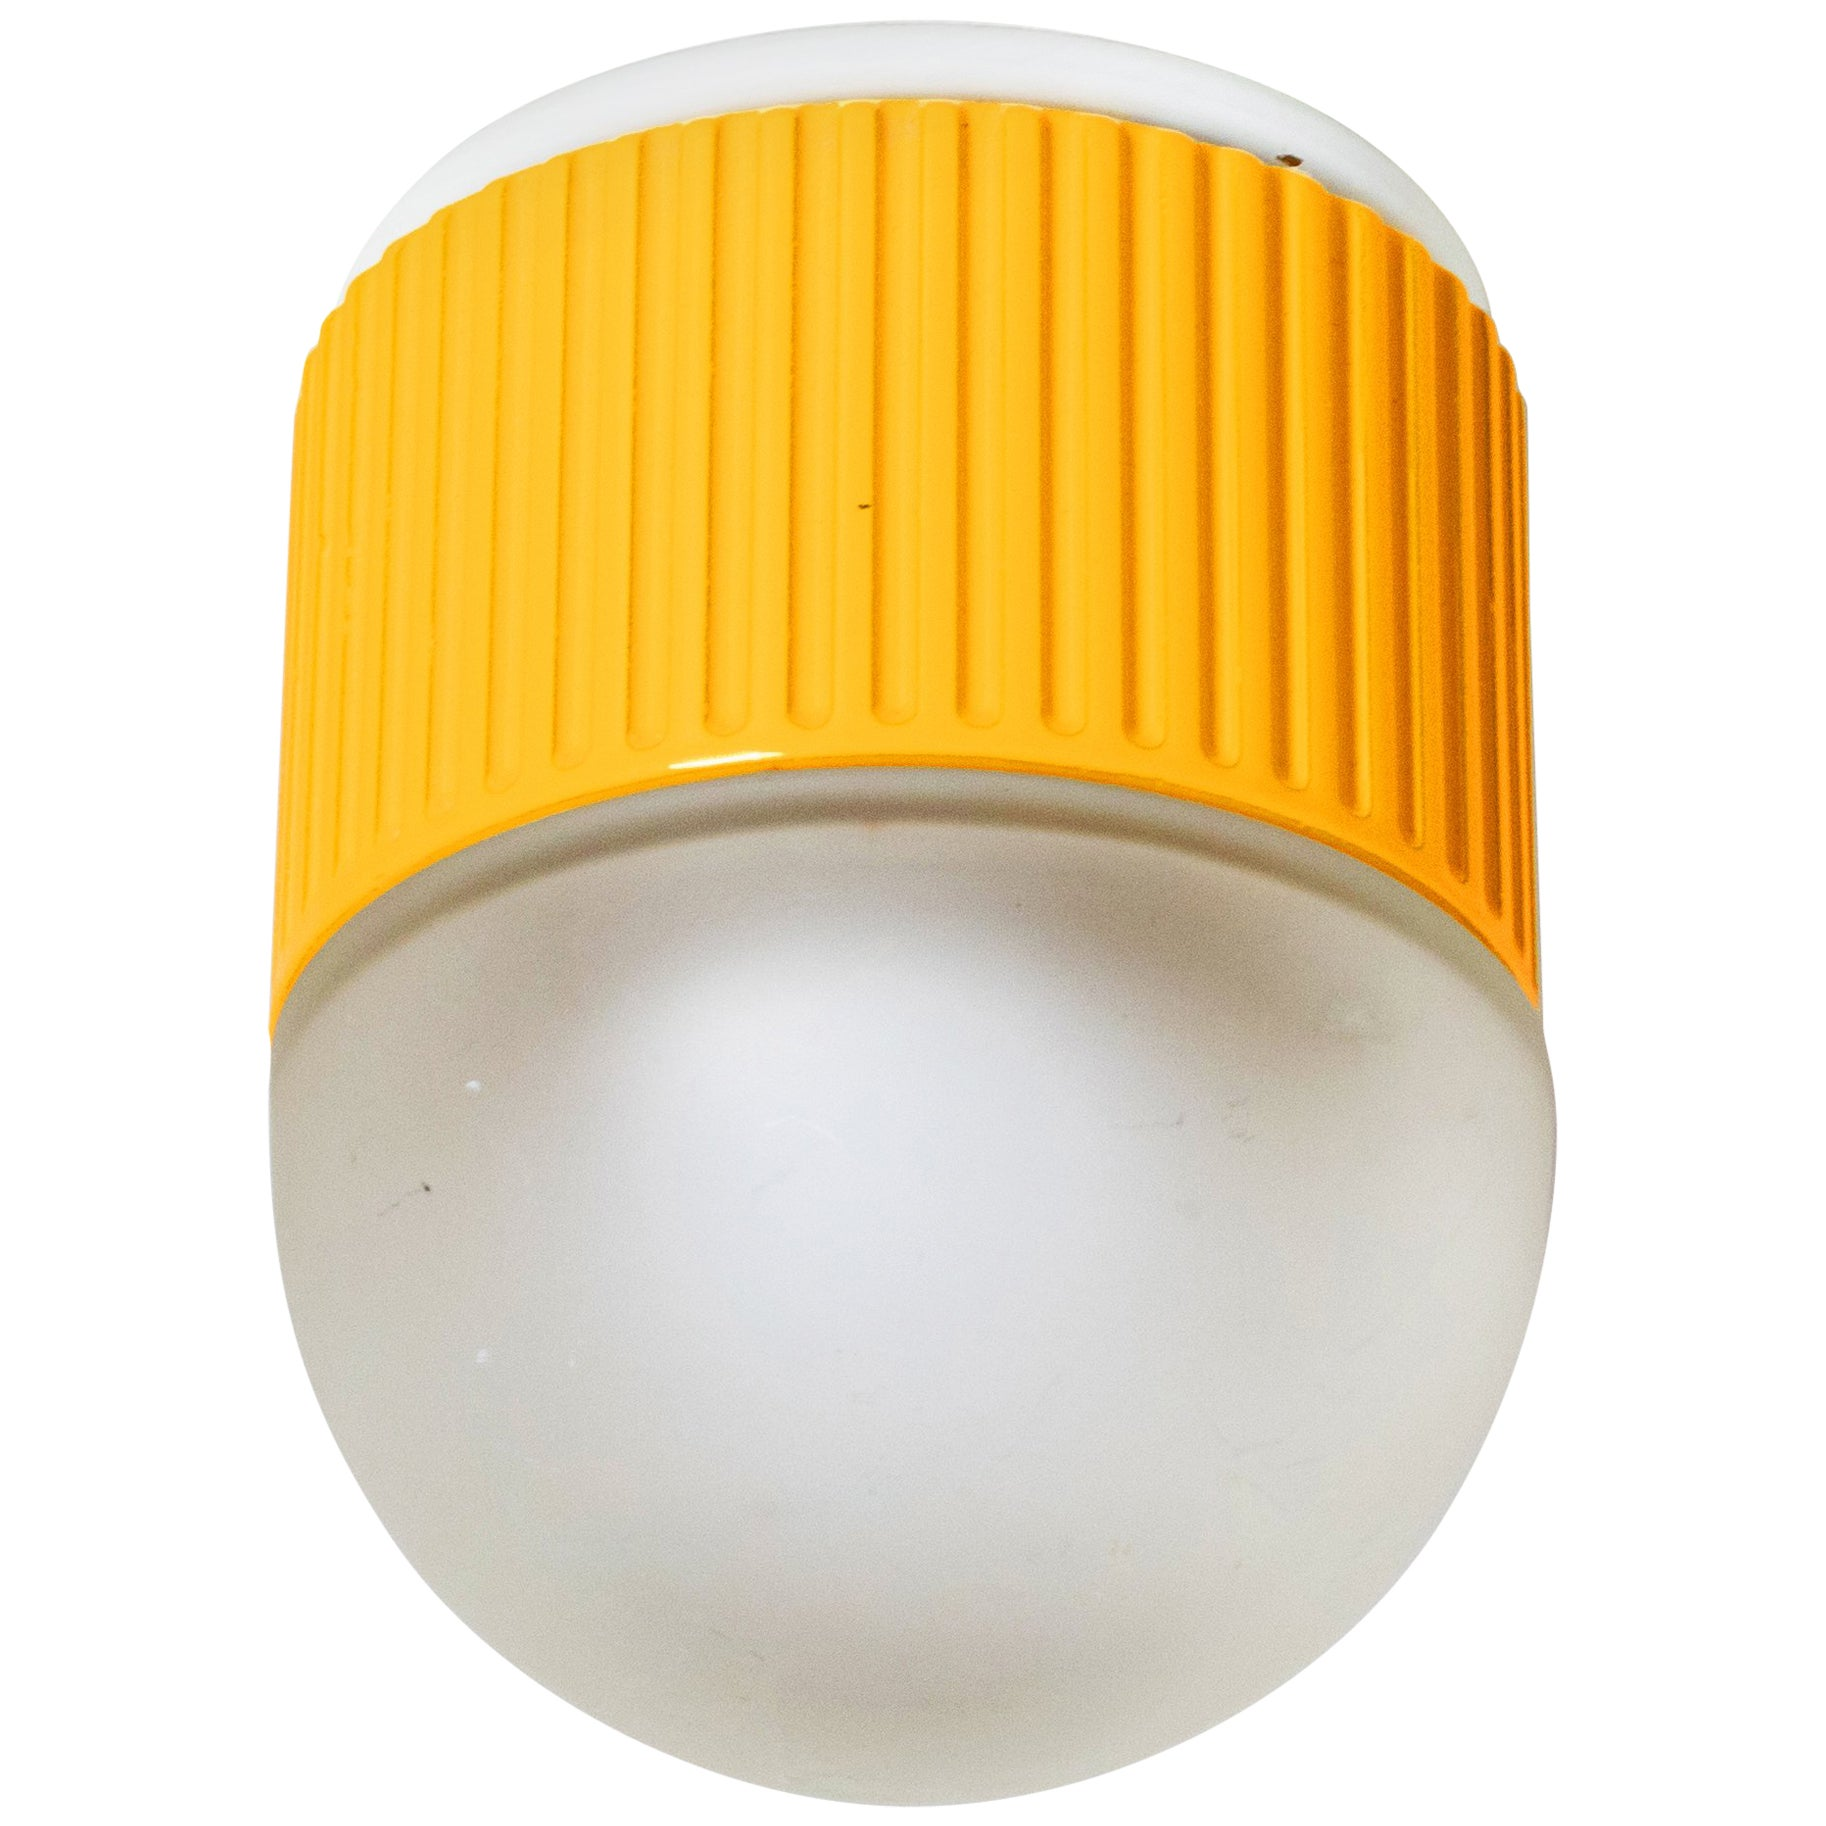 Bulbo Sconce and Flush Mount in Yellow by Barbieri & Marianelli for Tronconi